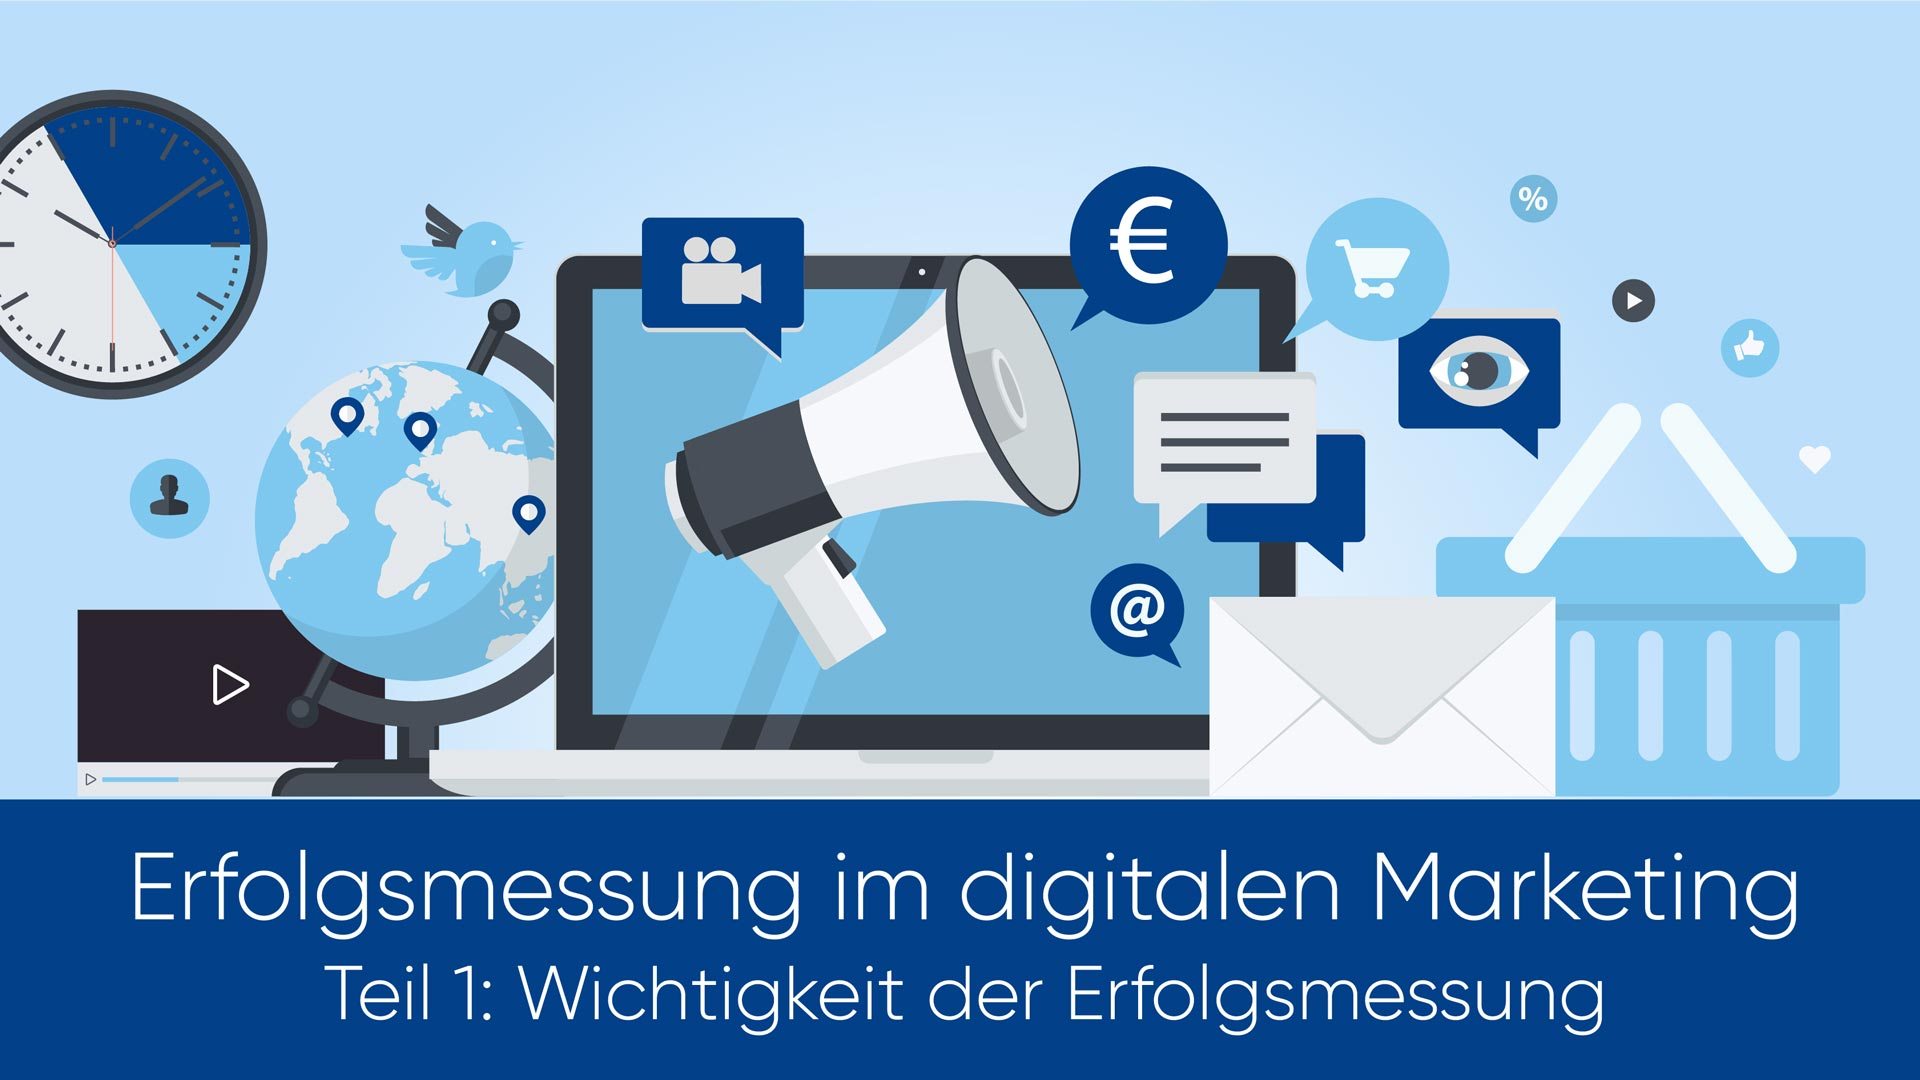 Erfolgsmessung digitales Marketing